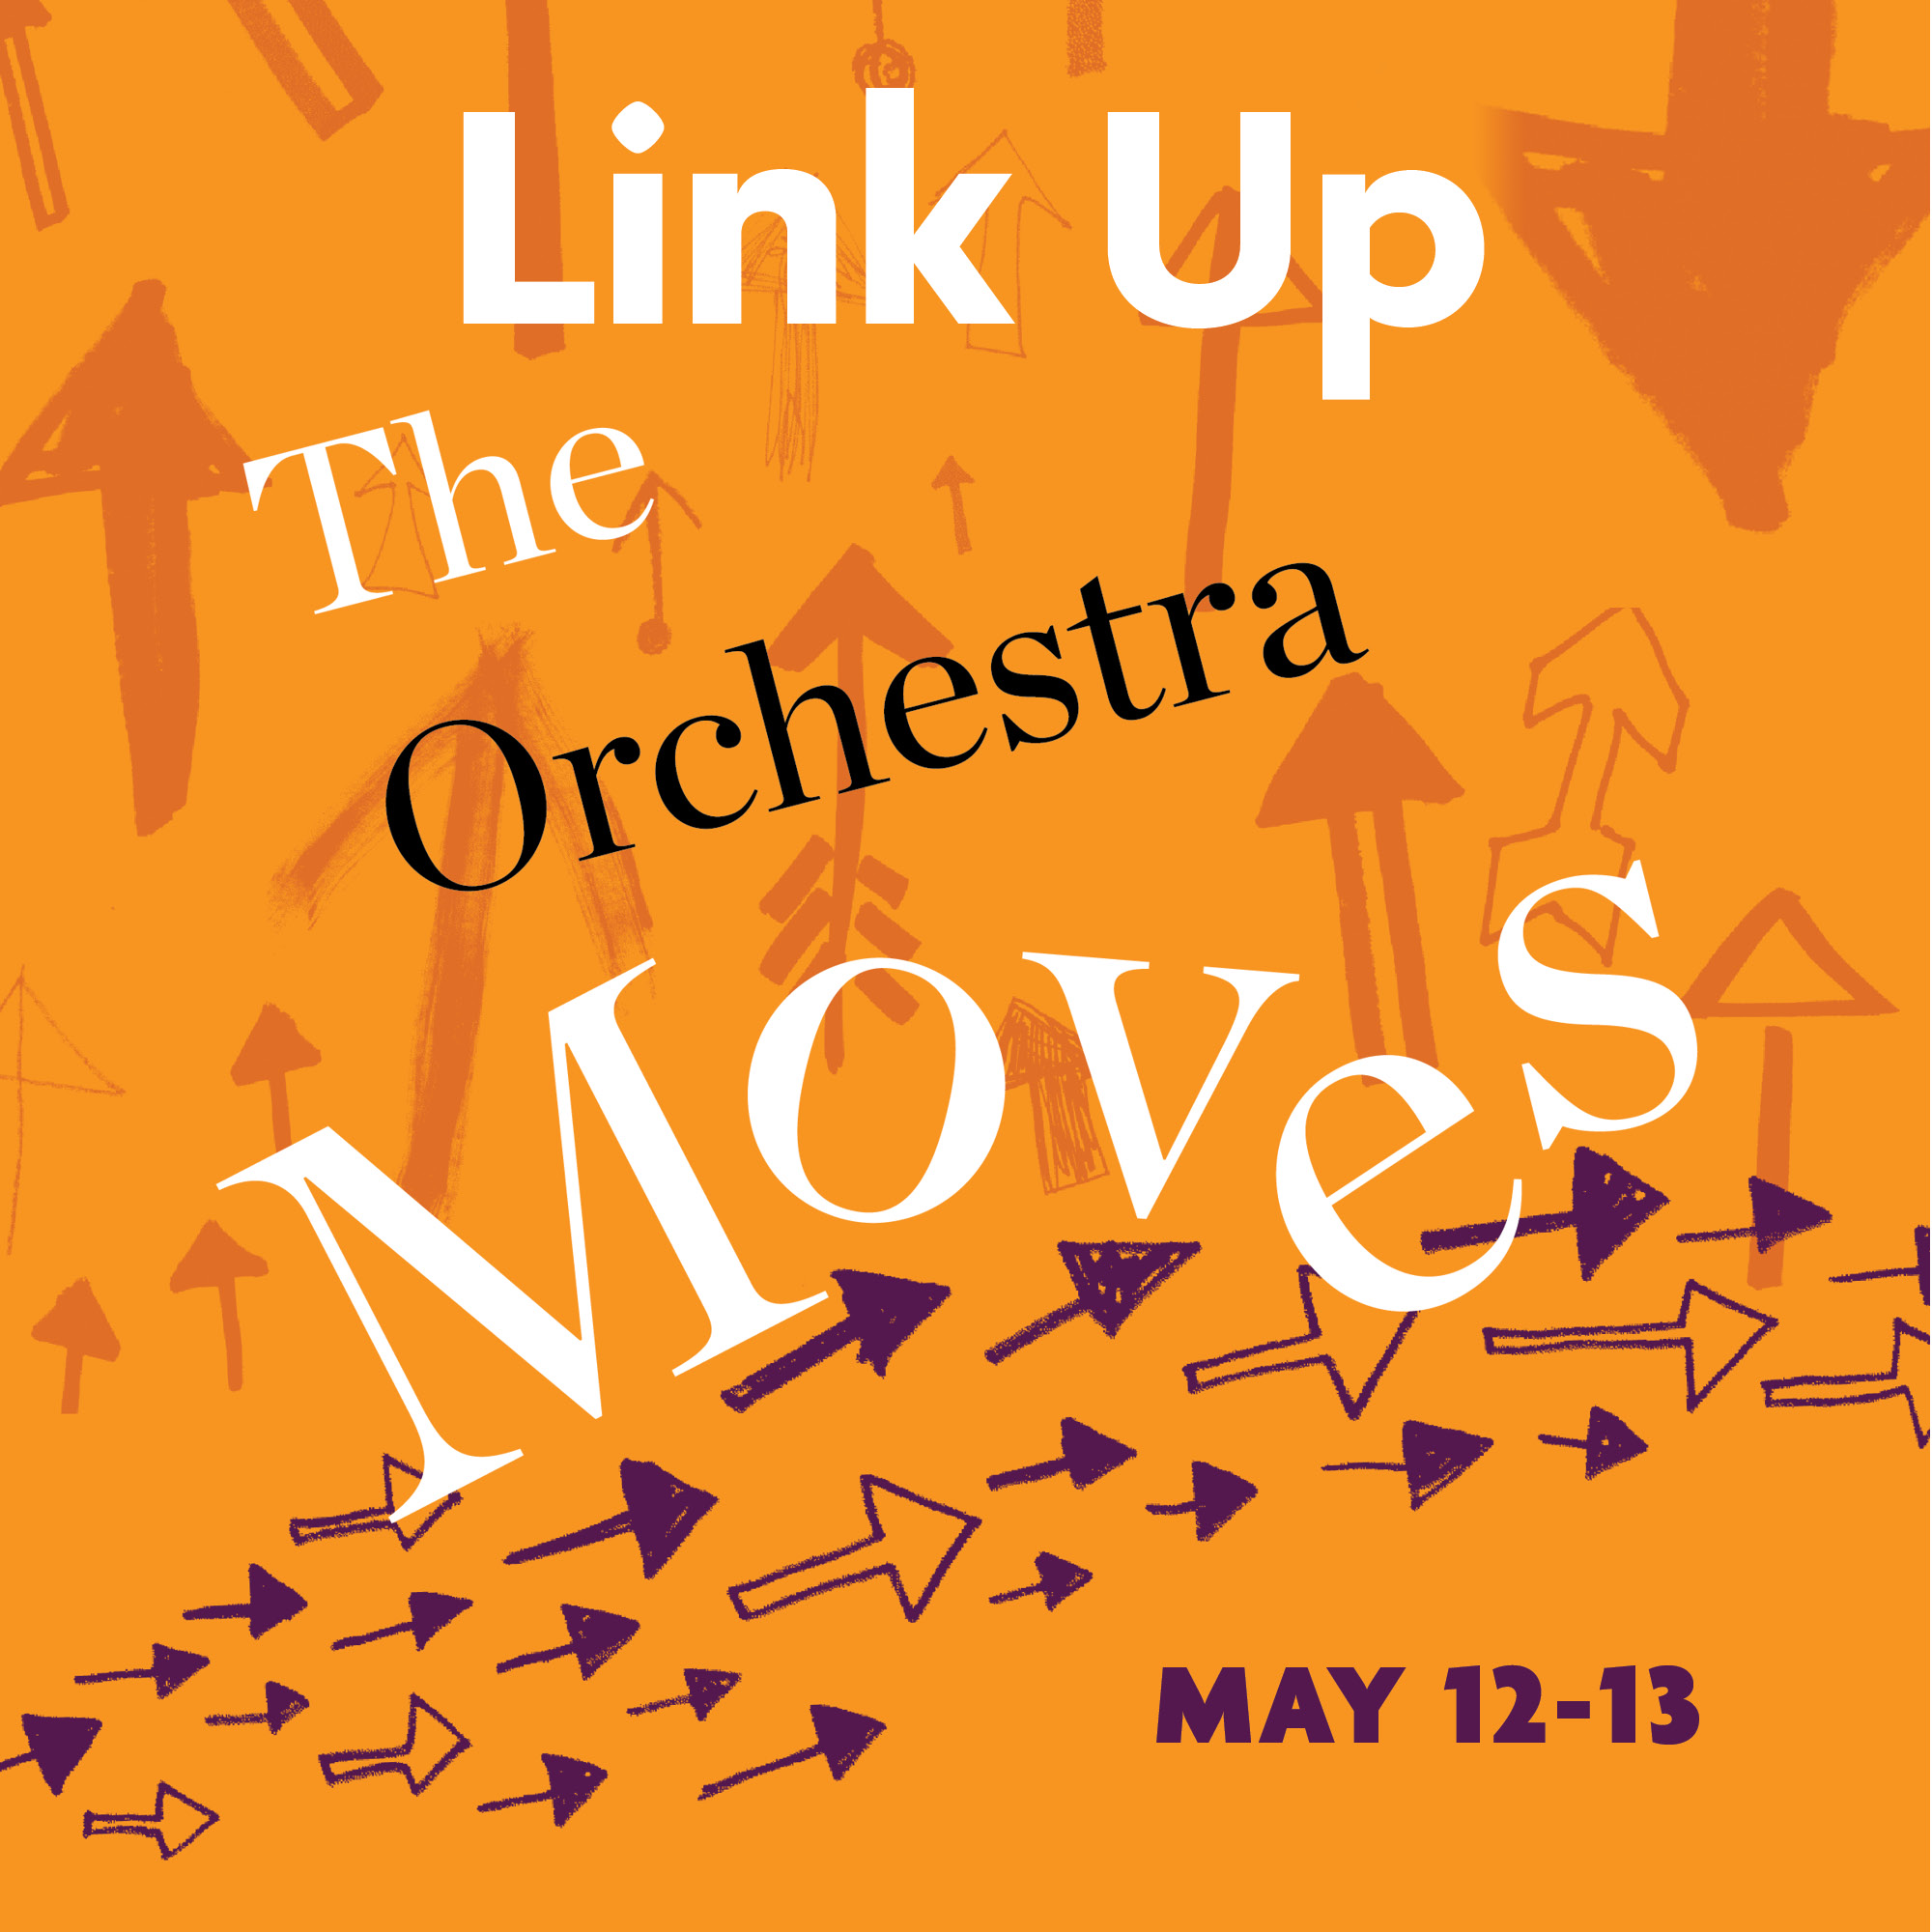 Link Up: The Orchestra Moves